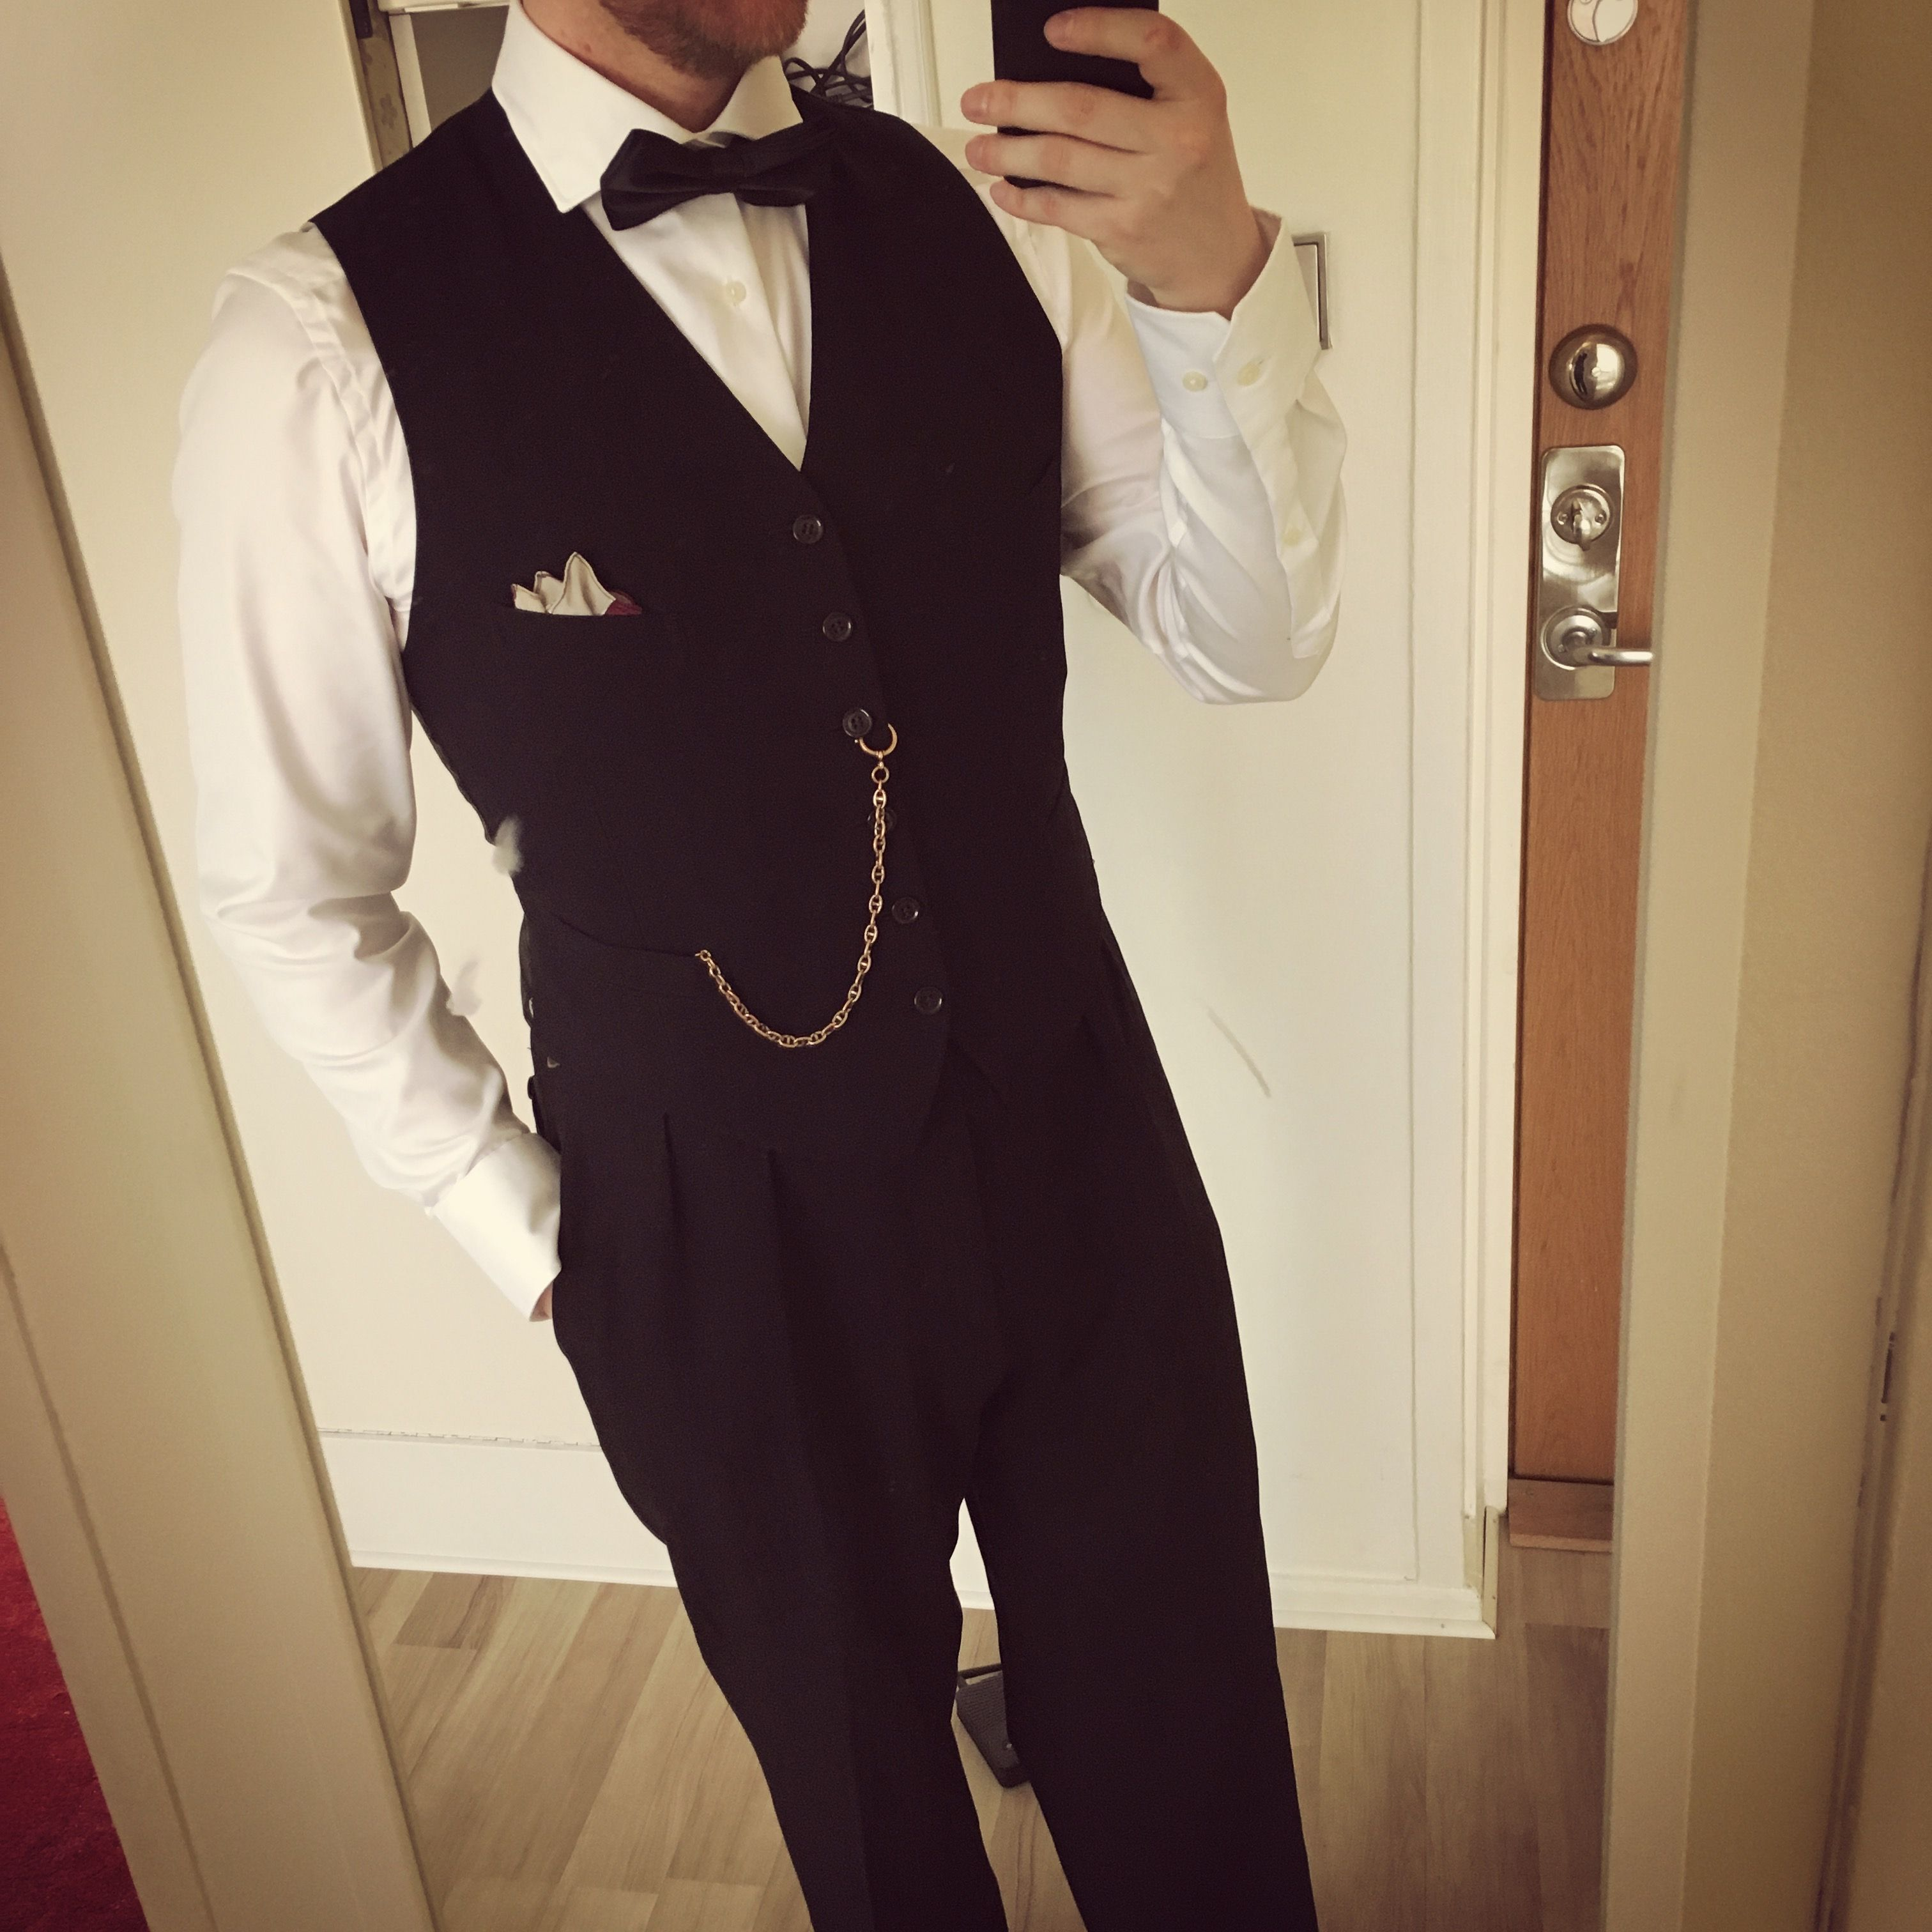 My outfit for a Great Gatsby themed party 2017. With pocket watch and all! & My outfit for a Great Gatsby themed party 2017. With pocket watch ...